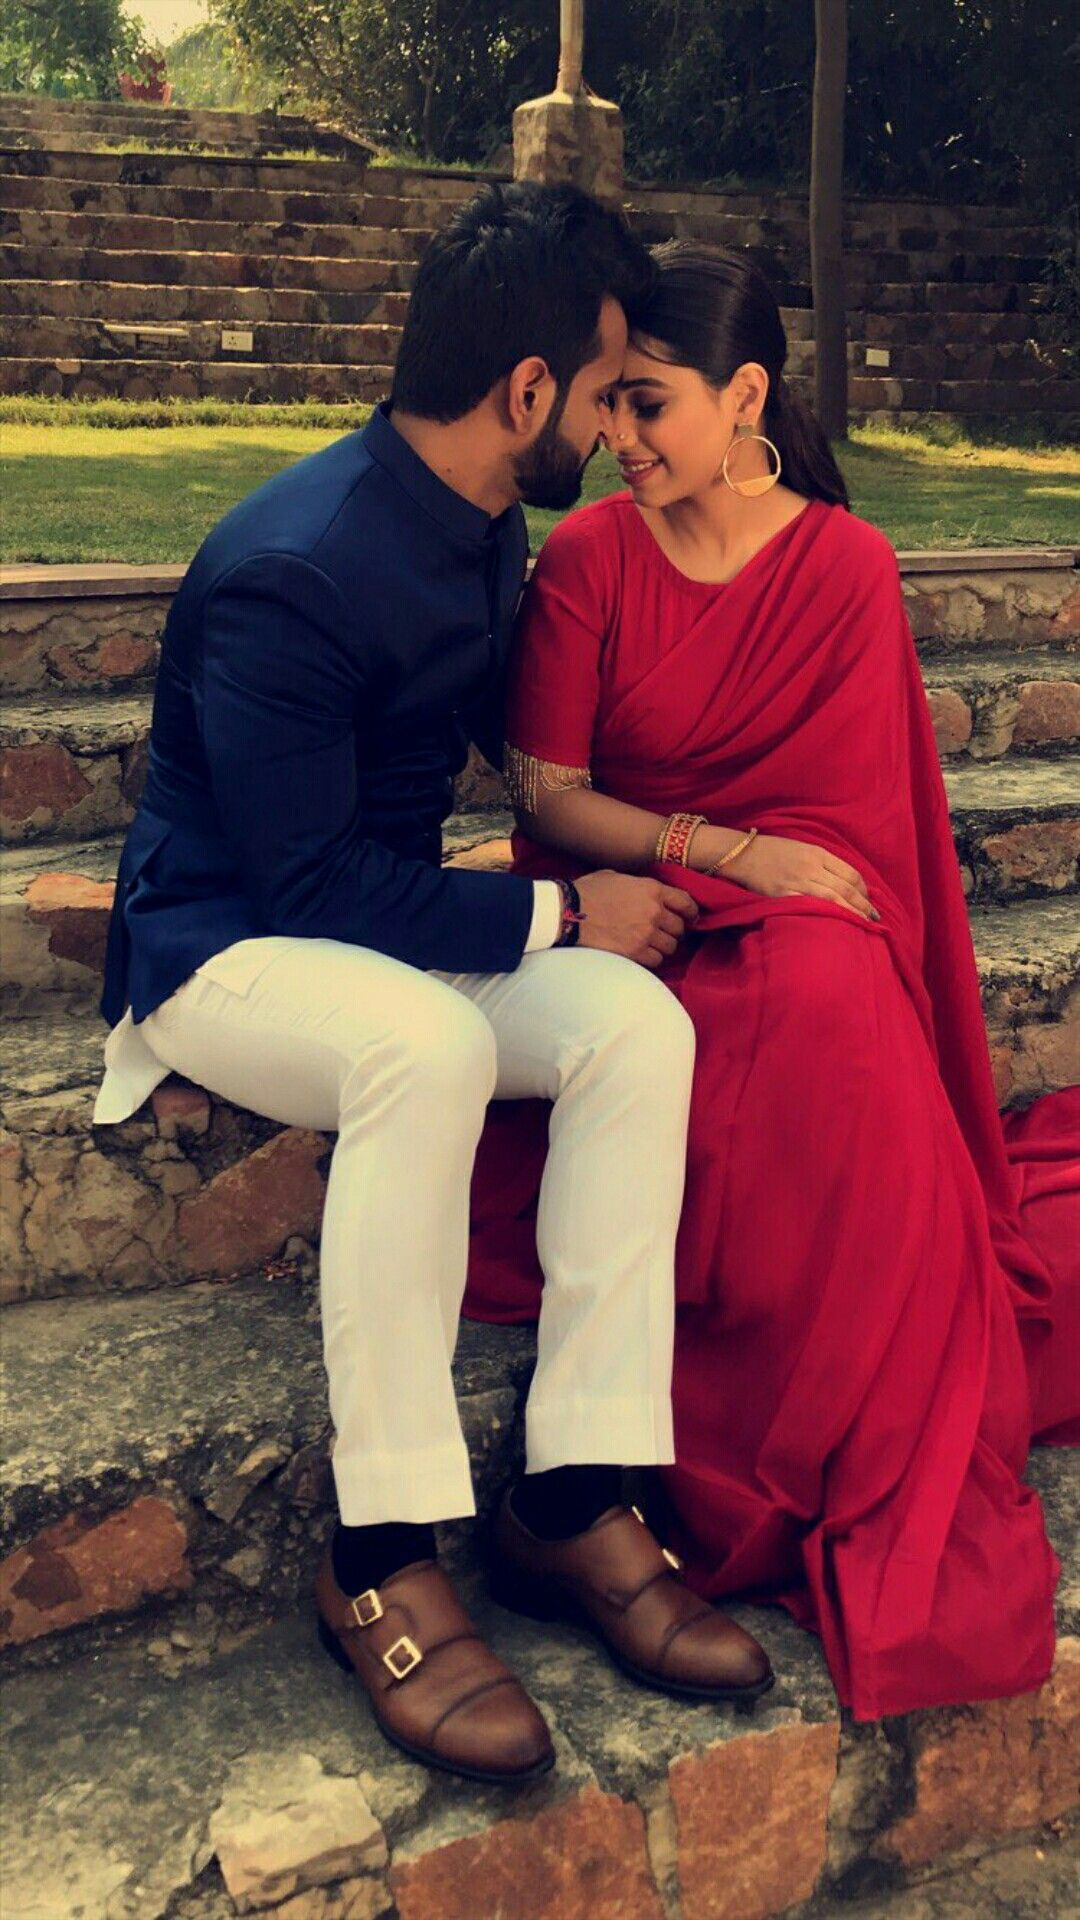 Pin By Navpreet Kaur Gill On Beautiful Couples Couples Photoshoot Indian Wedding Photography Poses Romantic Couple Images